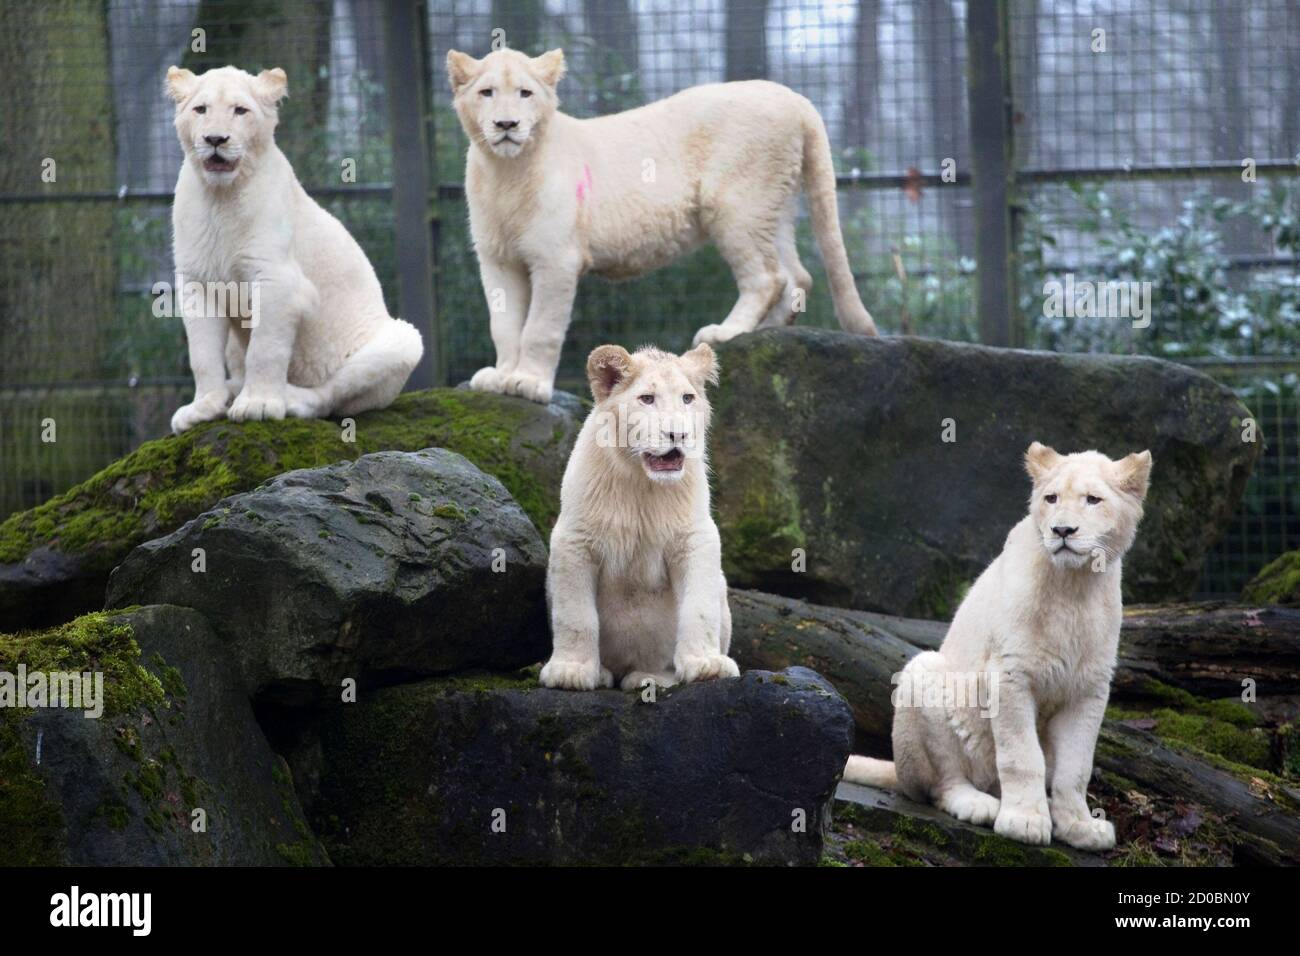 """Four rare white lion cubs, 10-month-old twin sisters Luna and Ilanga (top), 7-month-old Credo (C), and 10-month-old Bandhura (R) explore the fresh winter air for the first time ever at the Ouwehands Zoo in Rhenen February 11, 2011. The cubs arrived in Rhenen 10 weeks ago and are descendants of the white lions, which are only found in the Timbavati nature reserve in South Africa. The white lion is a Kruger lion with a colour gene mutation. The names Luna means Moon, Ilanga means Sun, Bandura means Beautiful and Credo is named after a South African shaman, Credo Mutwa, who also is known as the """" Stock Photo"""